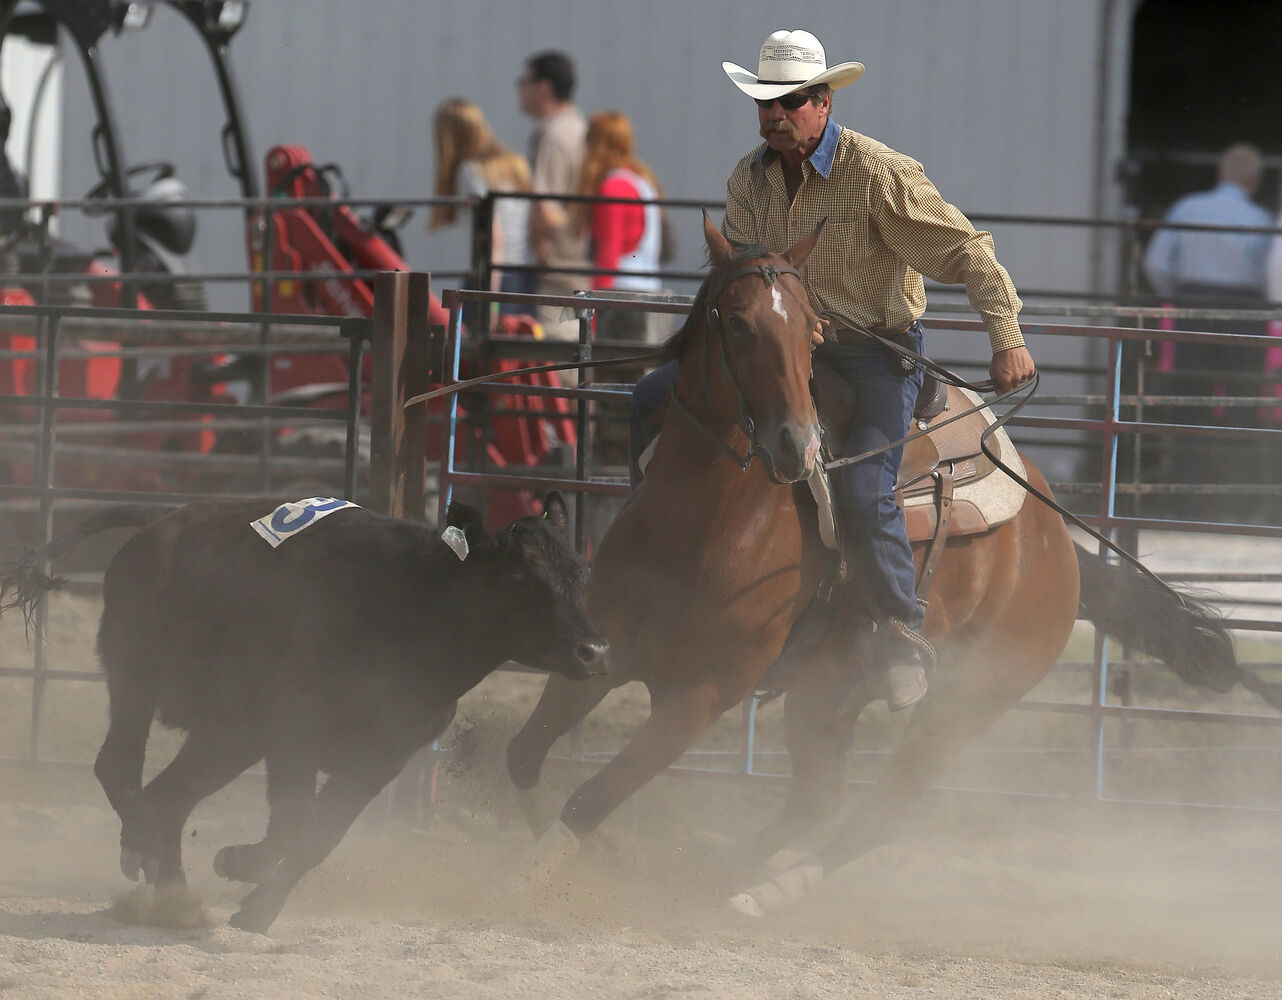 Man versus beast in the team penning competition Saturday. (Trevor Hagan / Winnipeg Free Press)